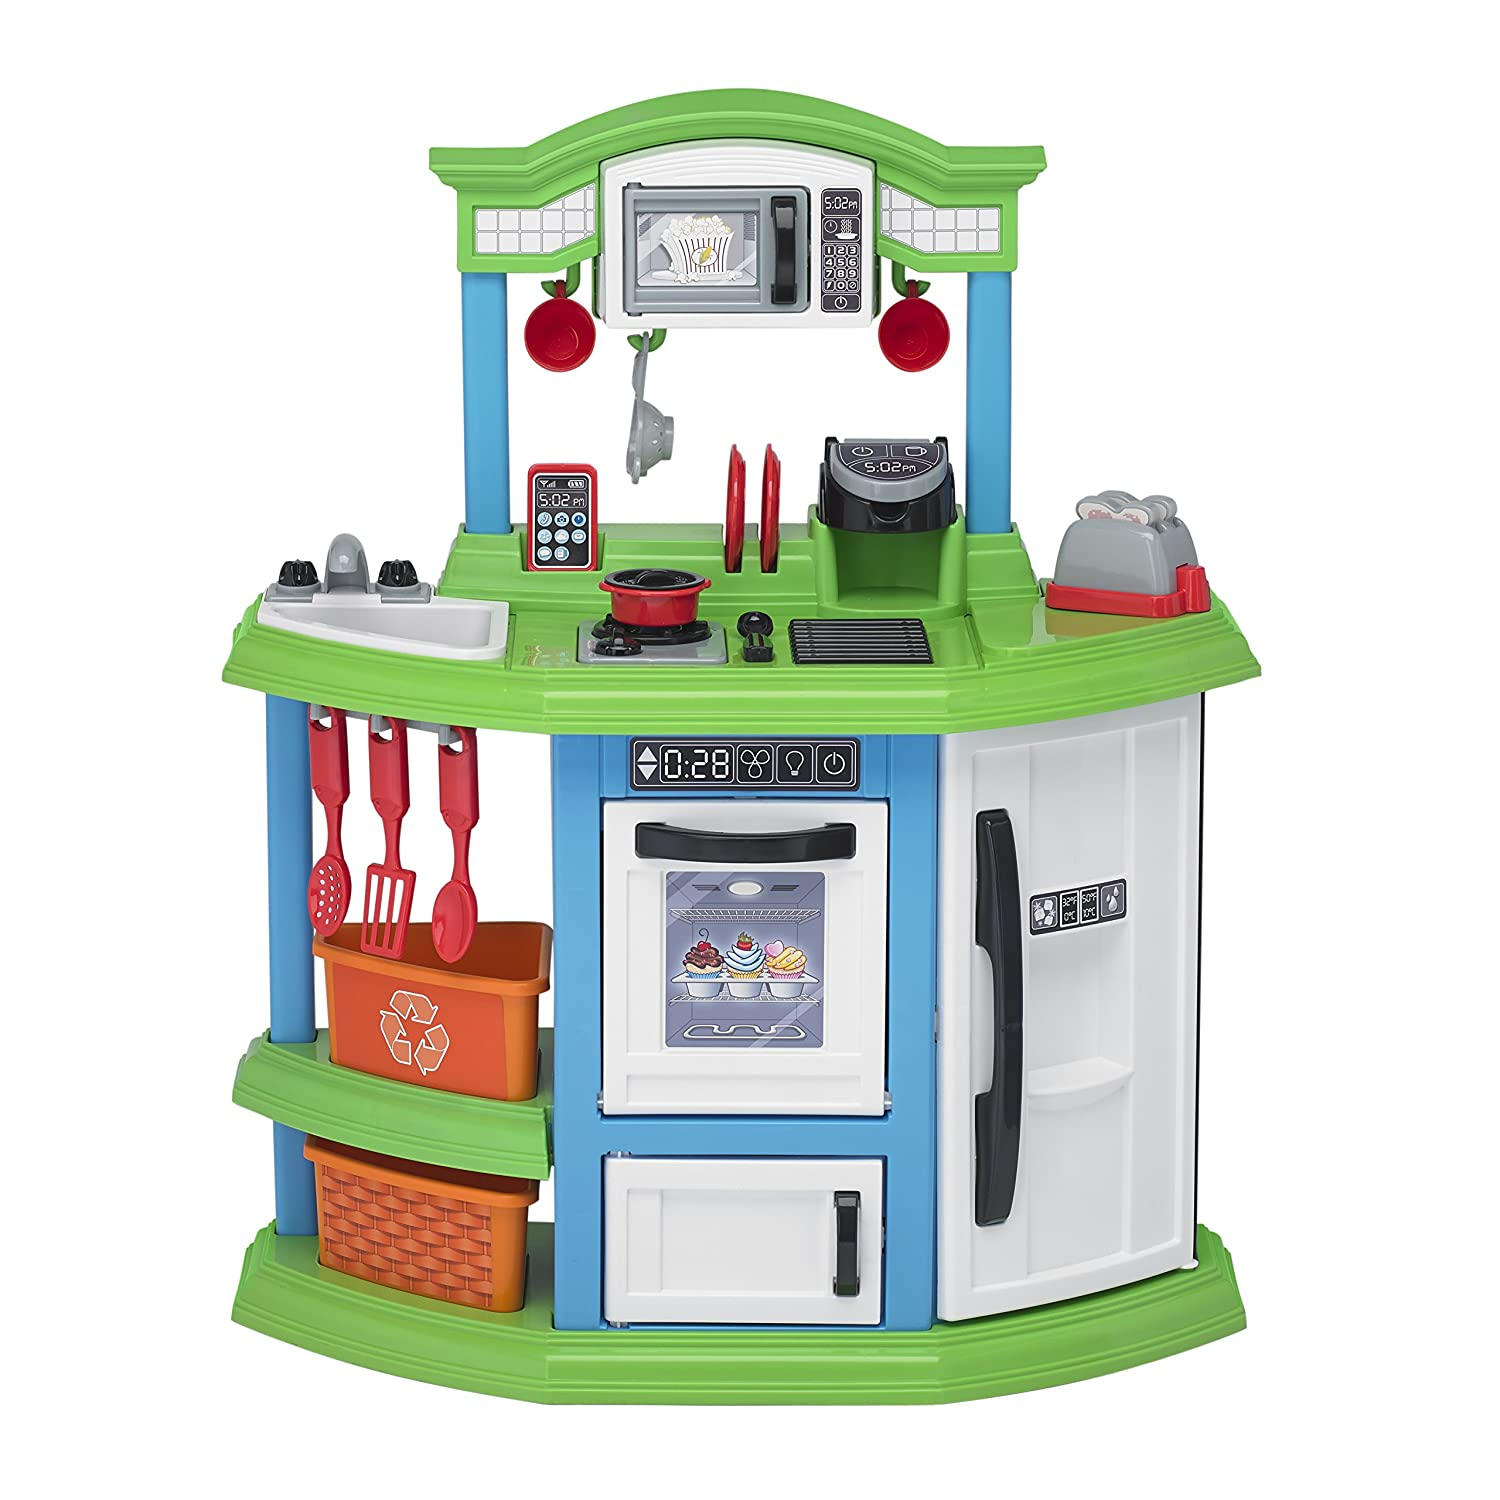 American plastic toys cozy comfort kitchen playset kitchen playsets amazon canada